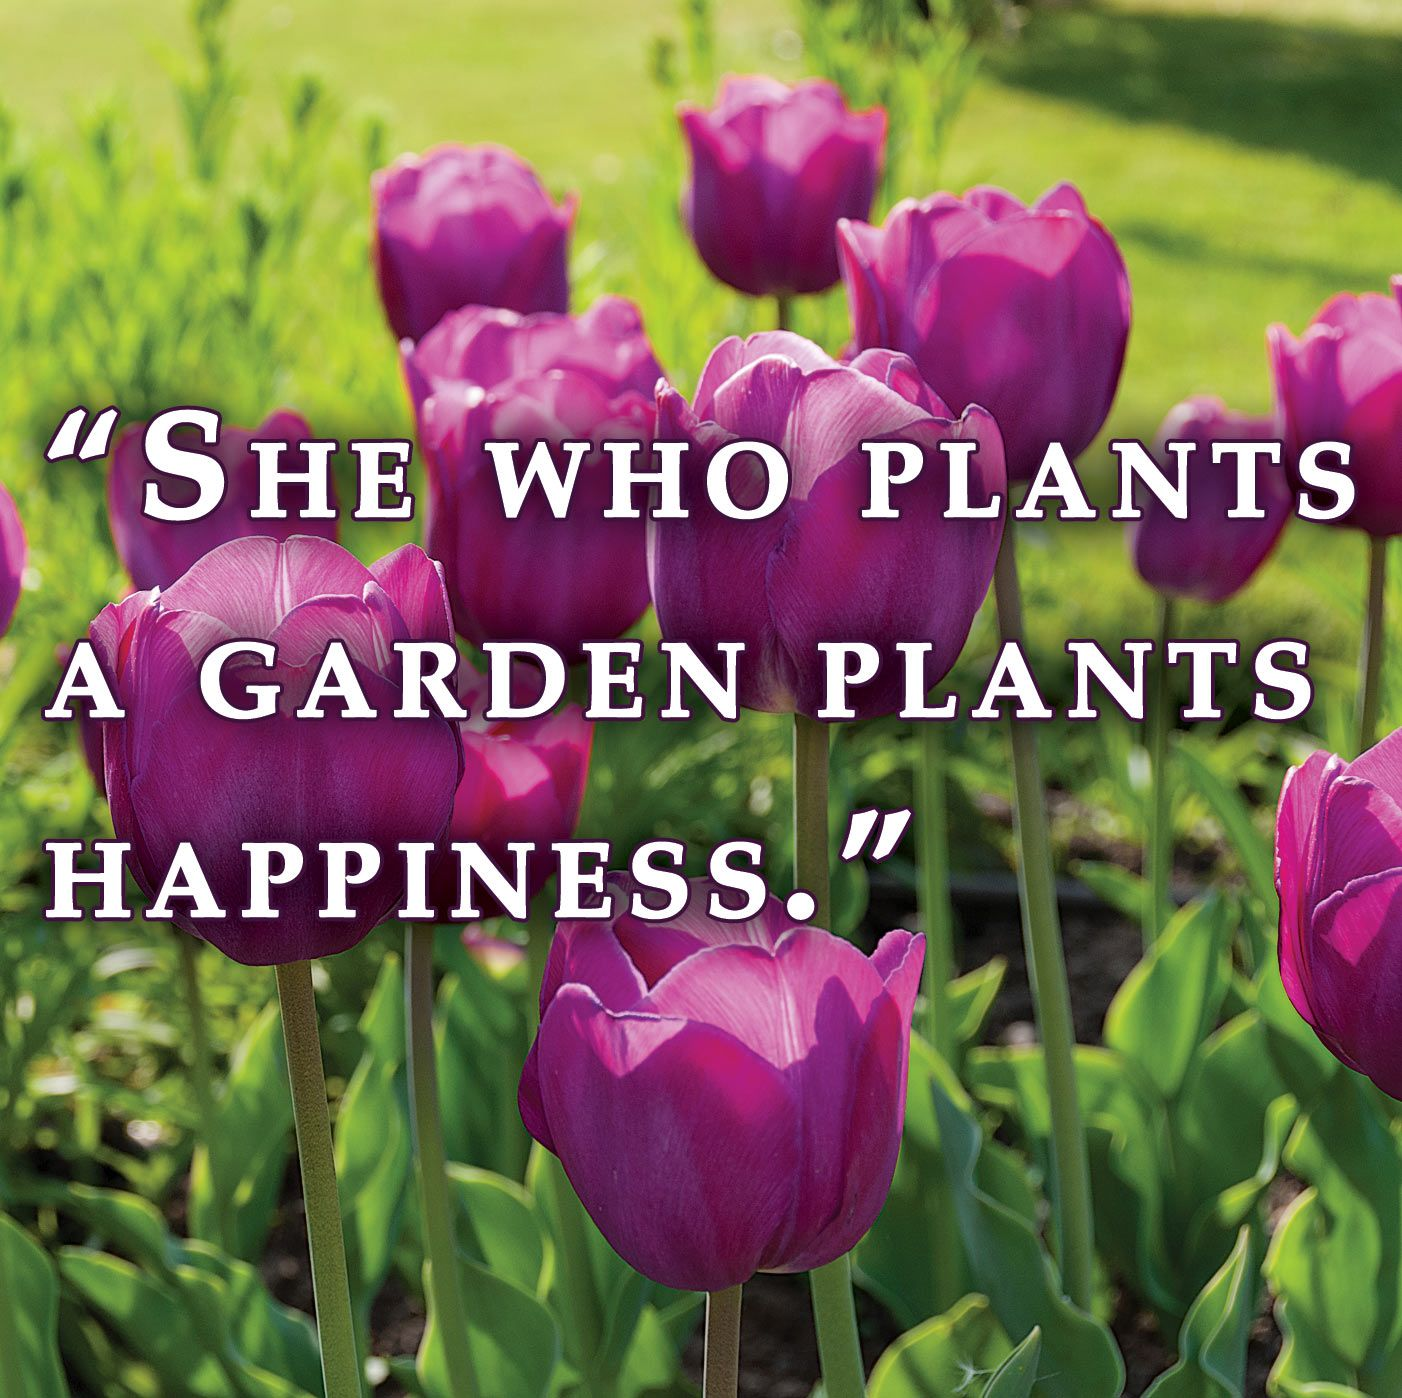 Quot She Who Plants A Garden Plants Happiness Quot Garden Quotes